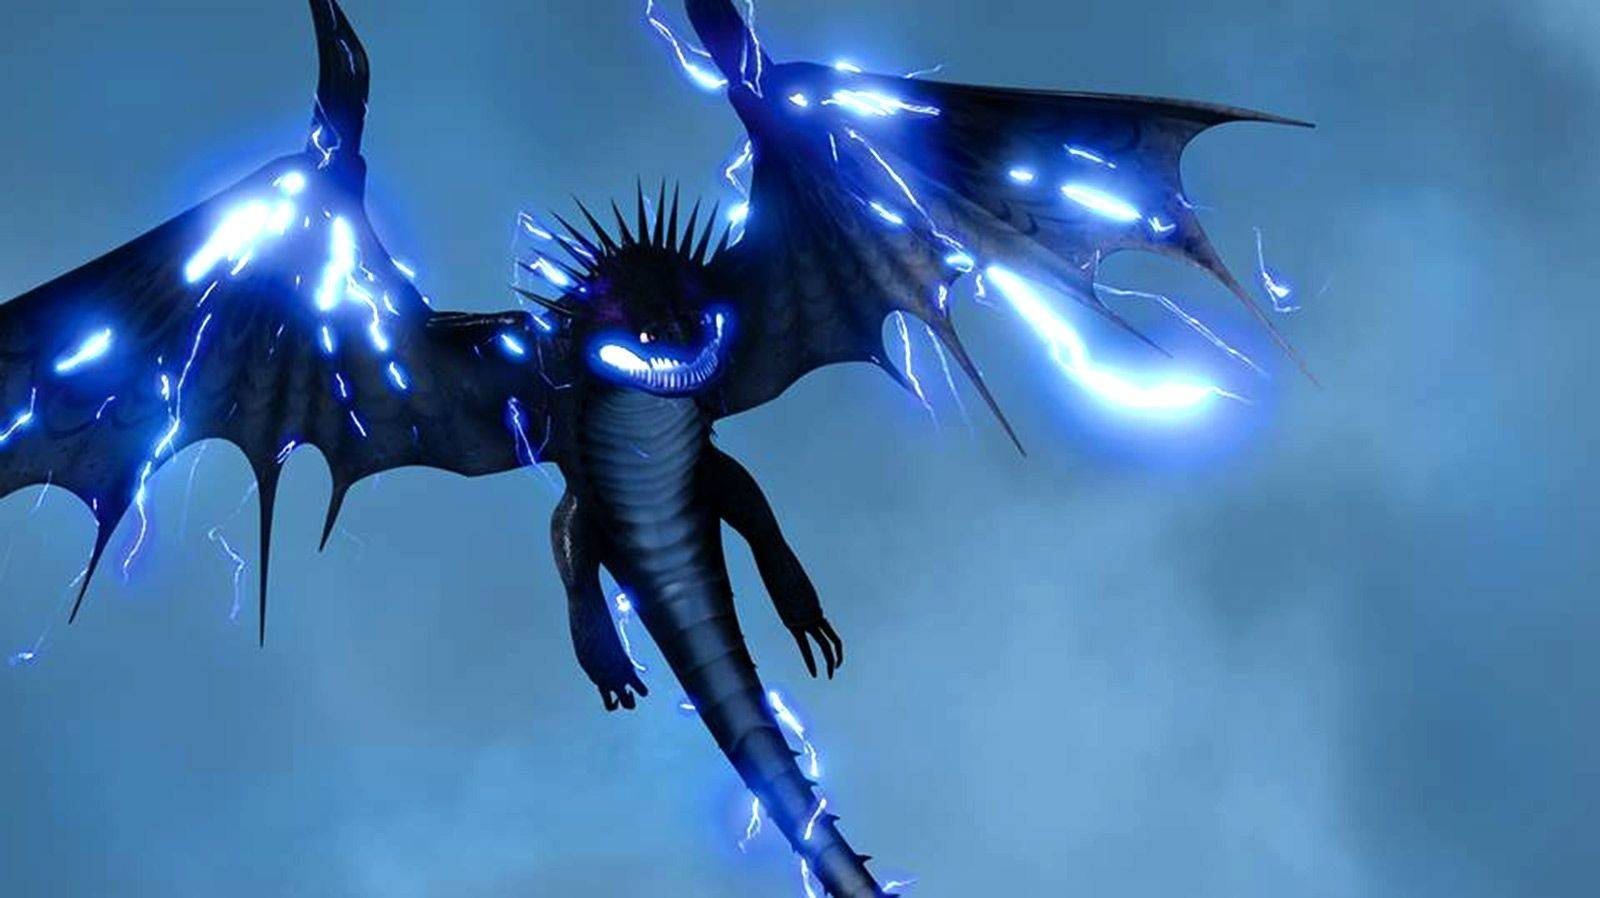 Blue Train Your Dragon 2 2221414 Hd Wallpaper Backgrounds Download